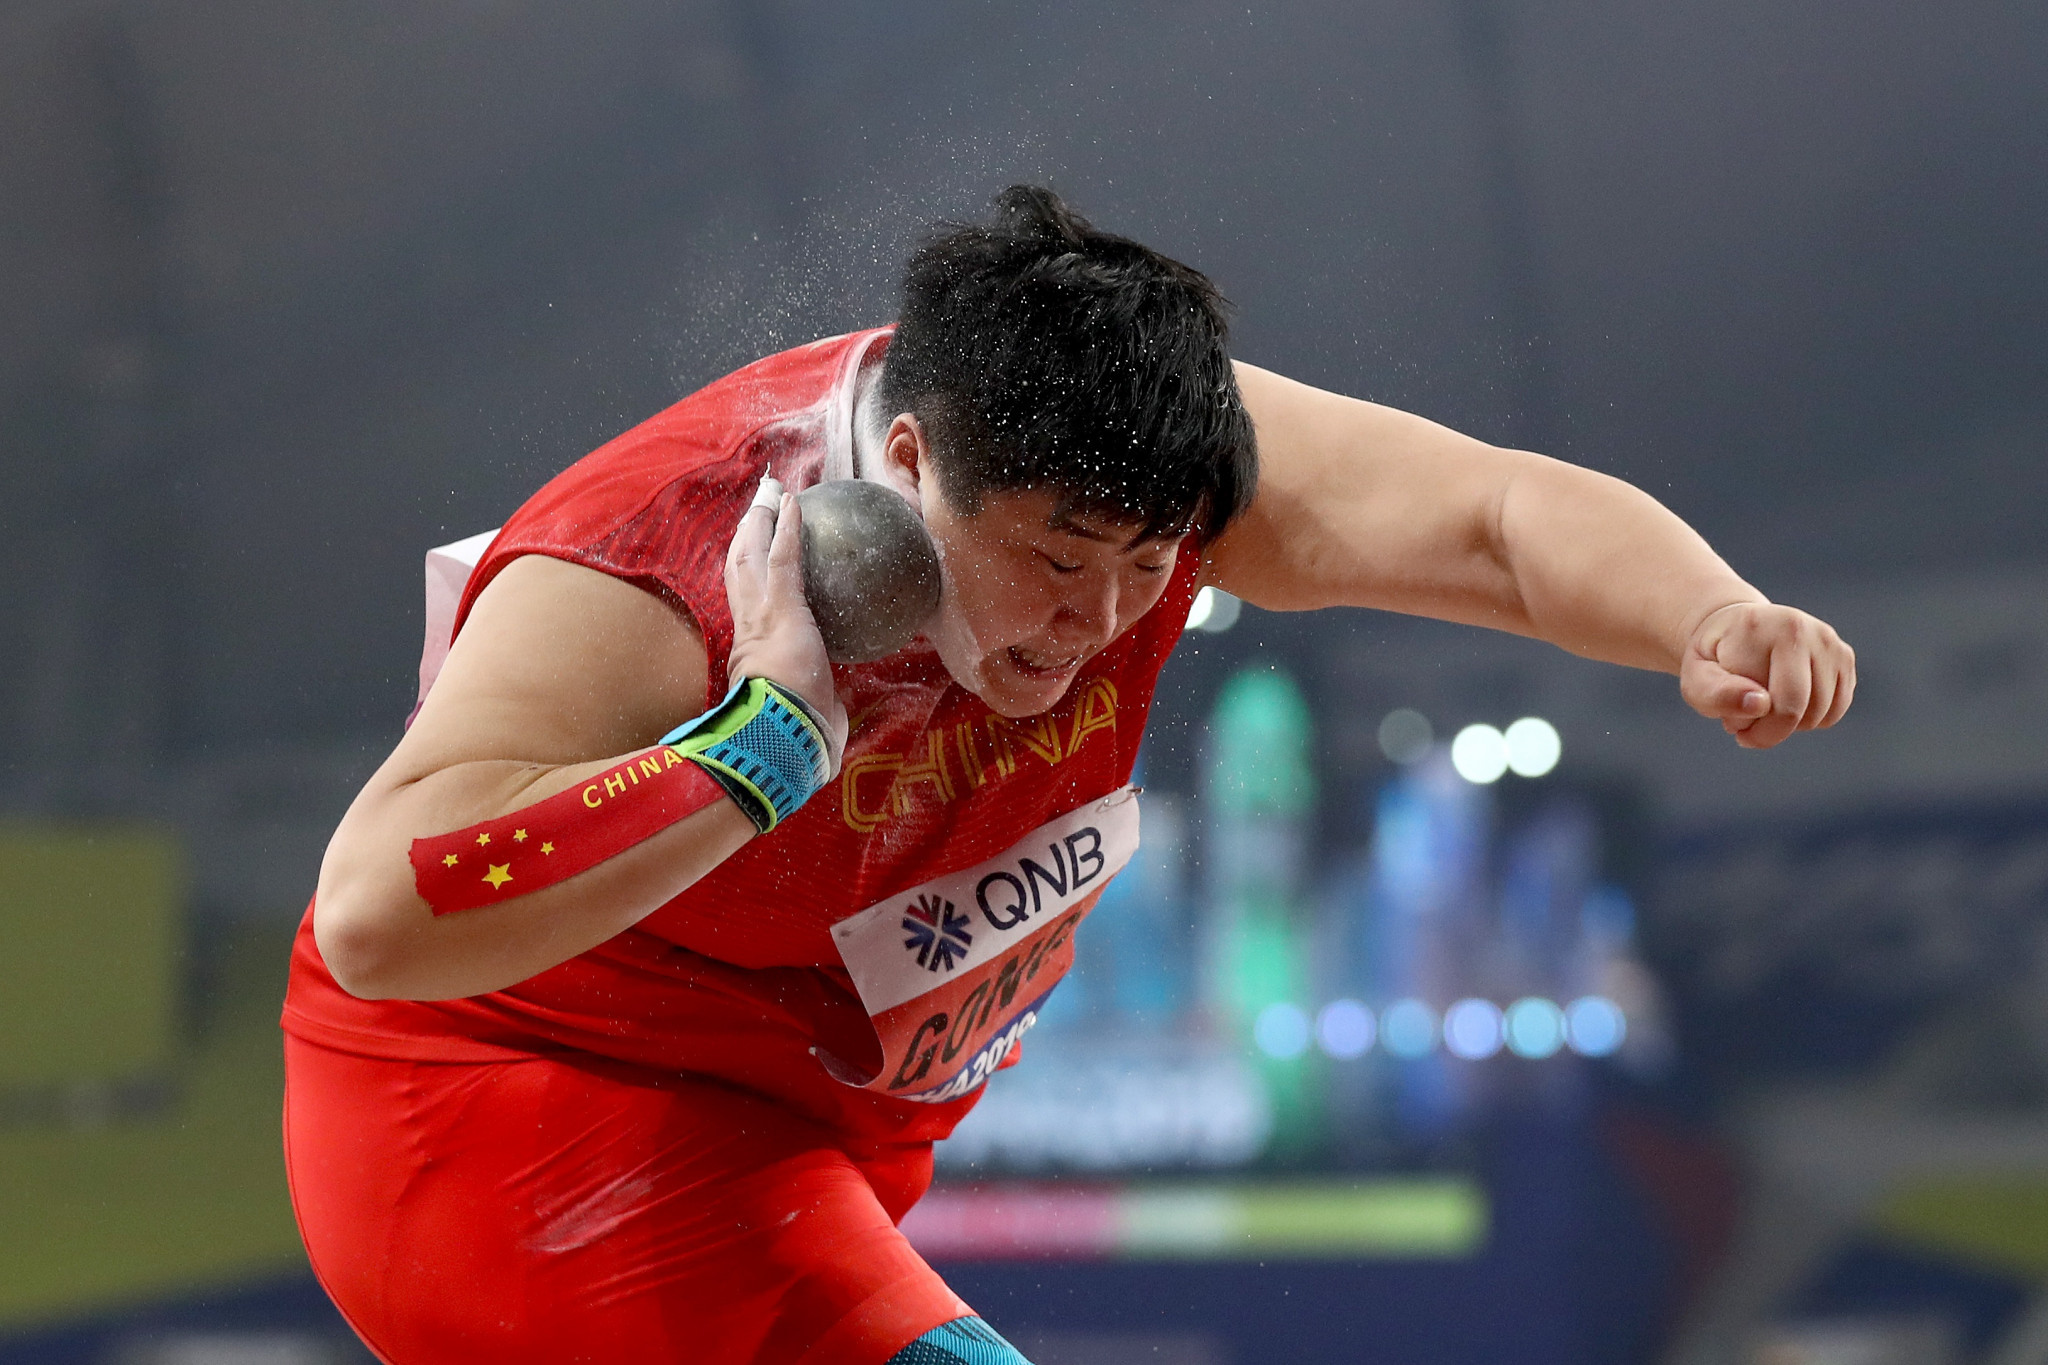 Shot putter Gong throws world lead as first indoor athletics event held in China since coronavirus outbreak